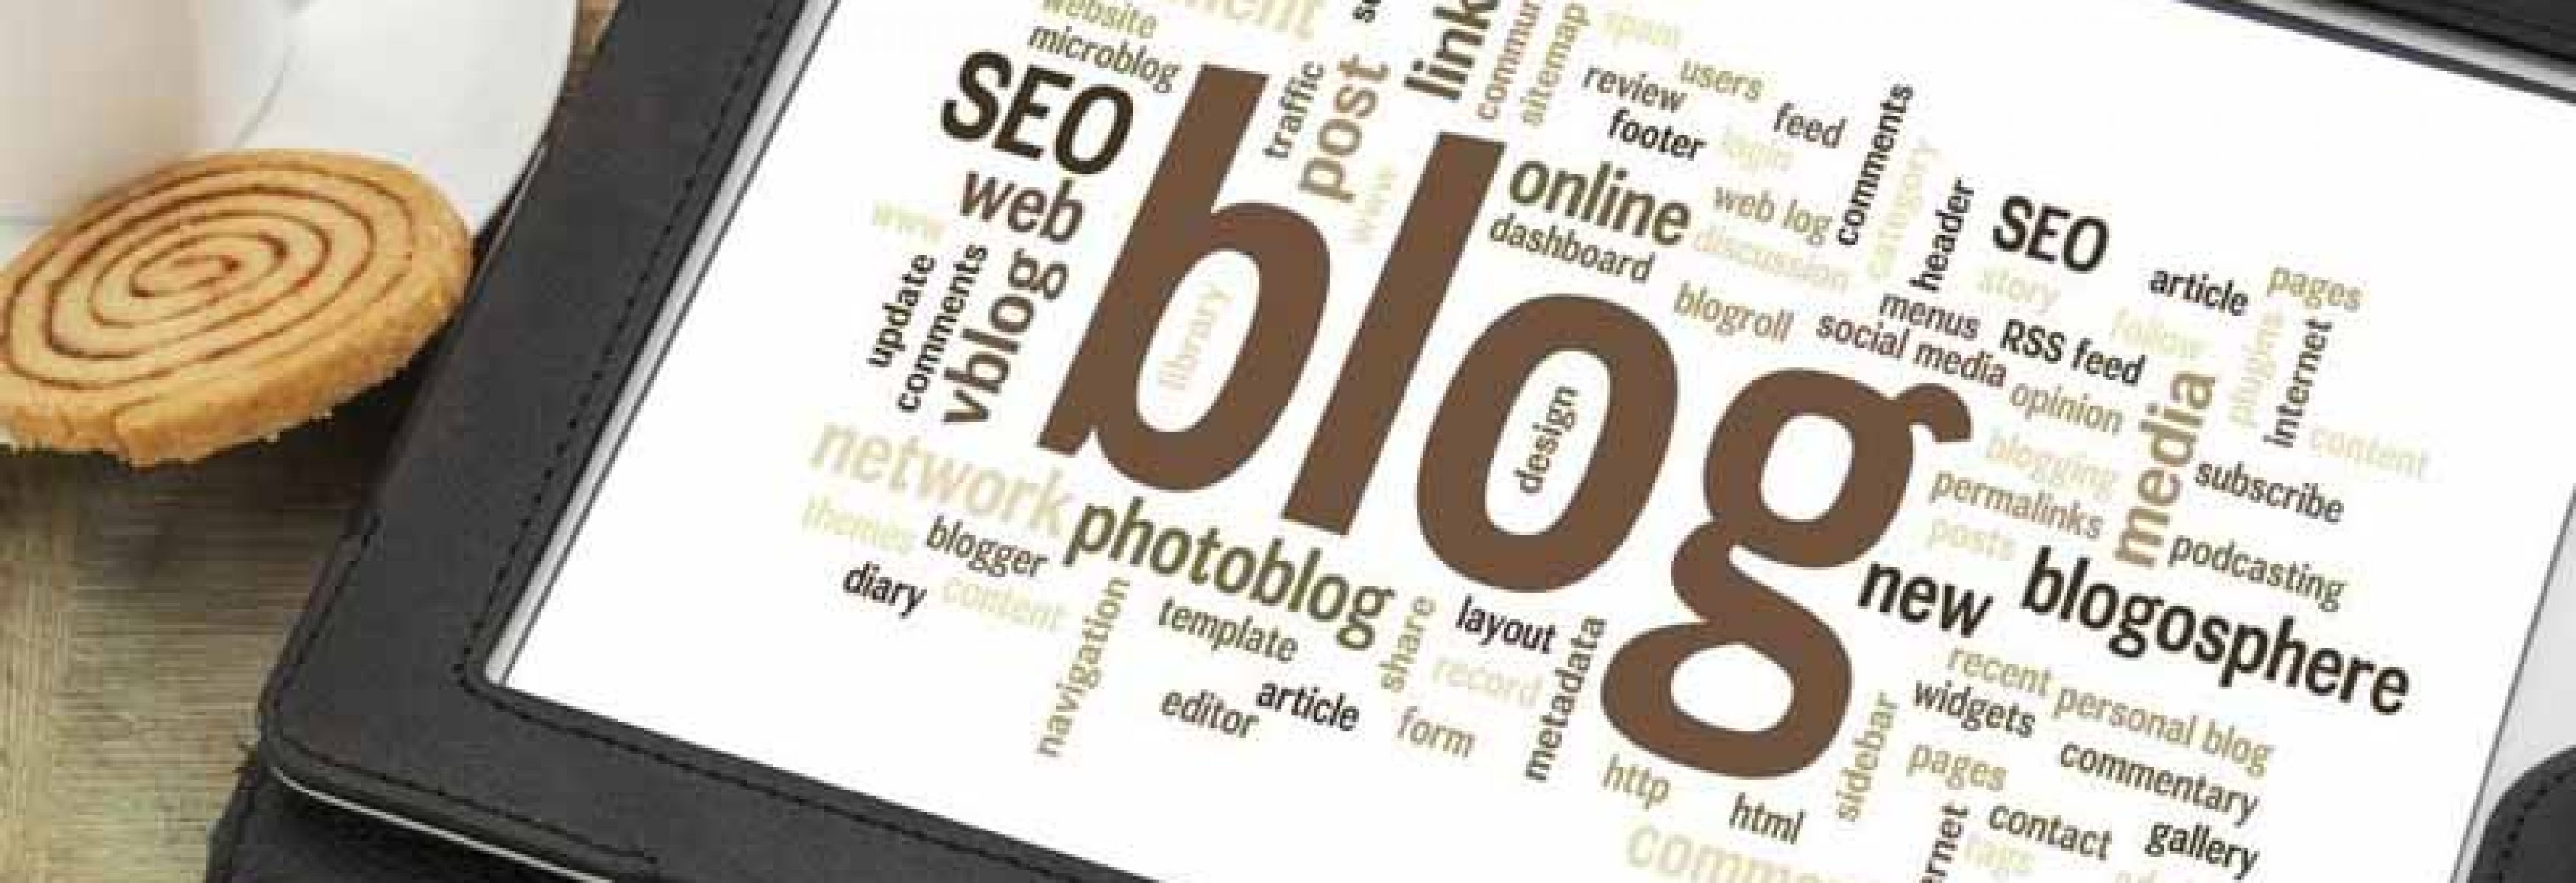 bigstock-cloud-of-words-or-tags-related-54411572-1024x683_web